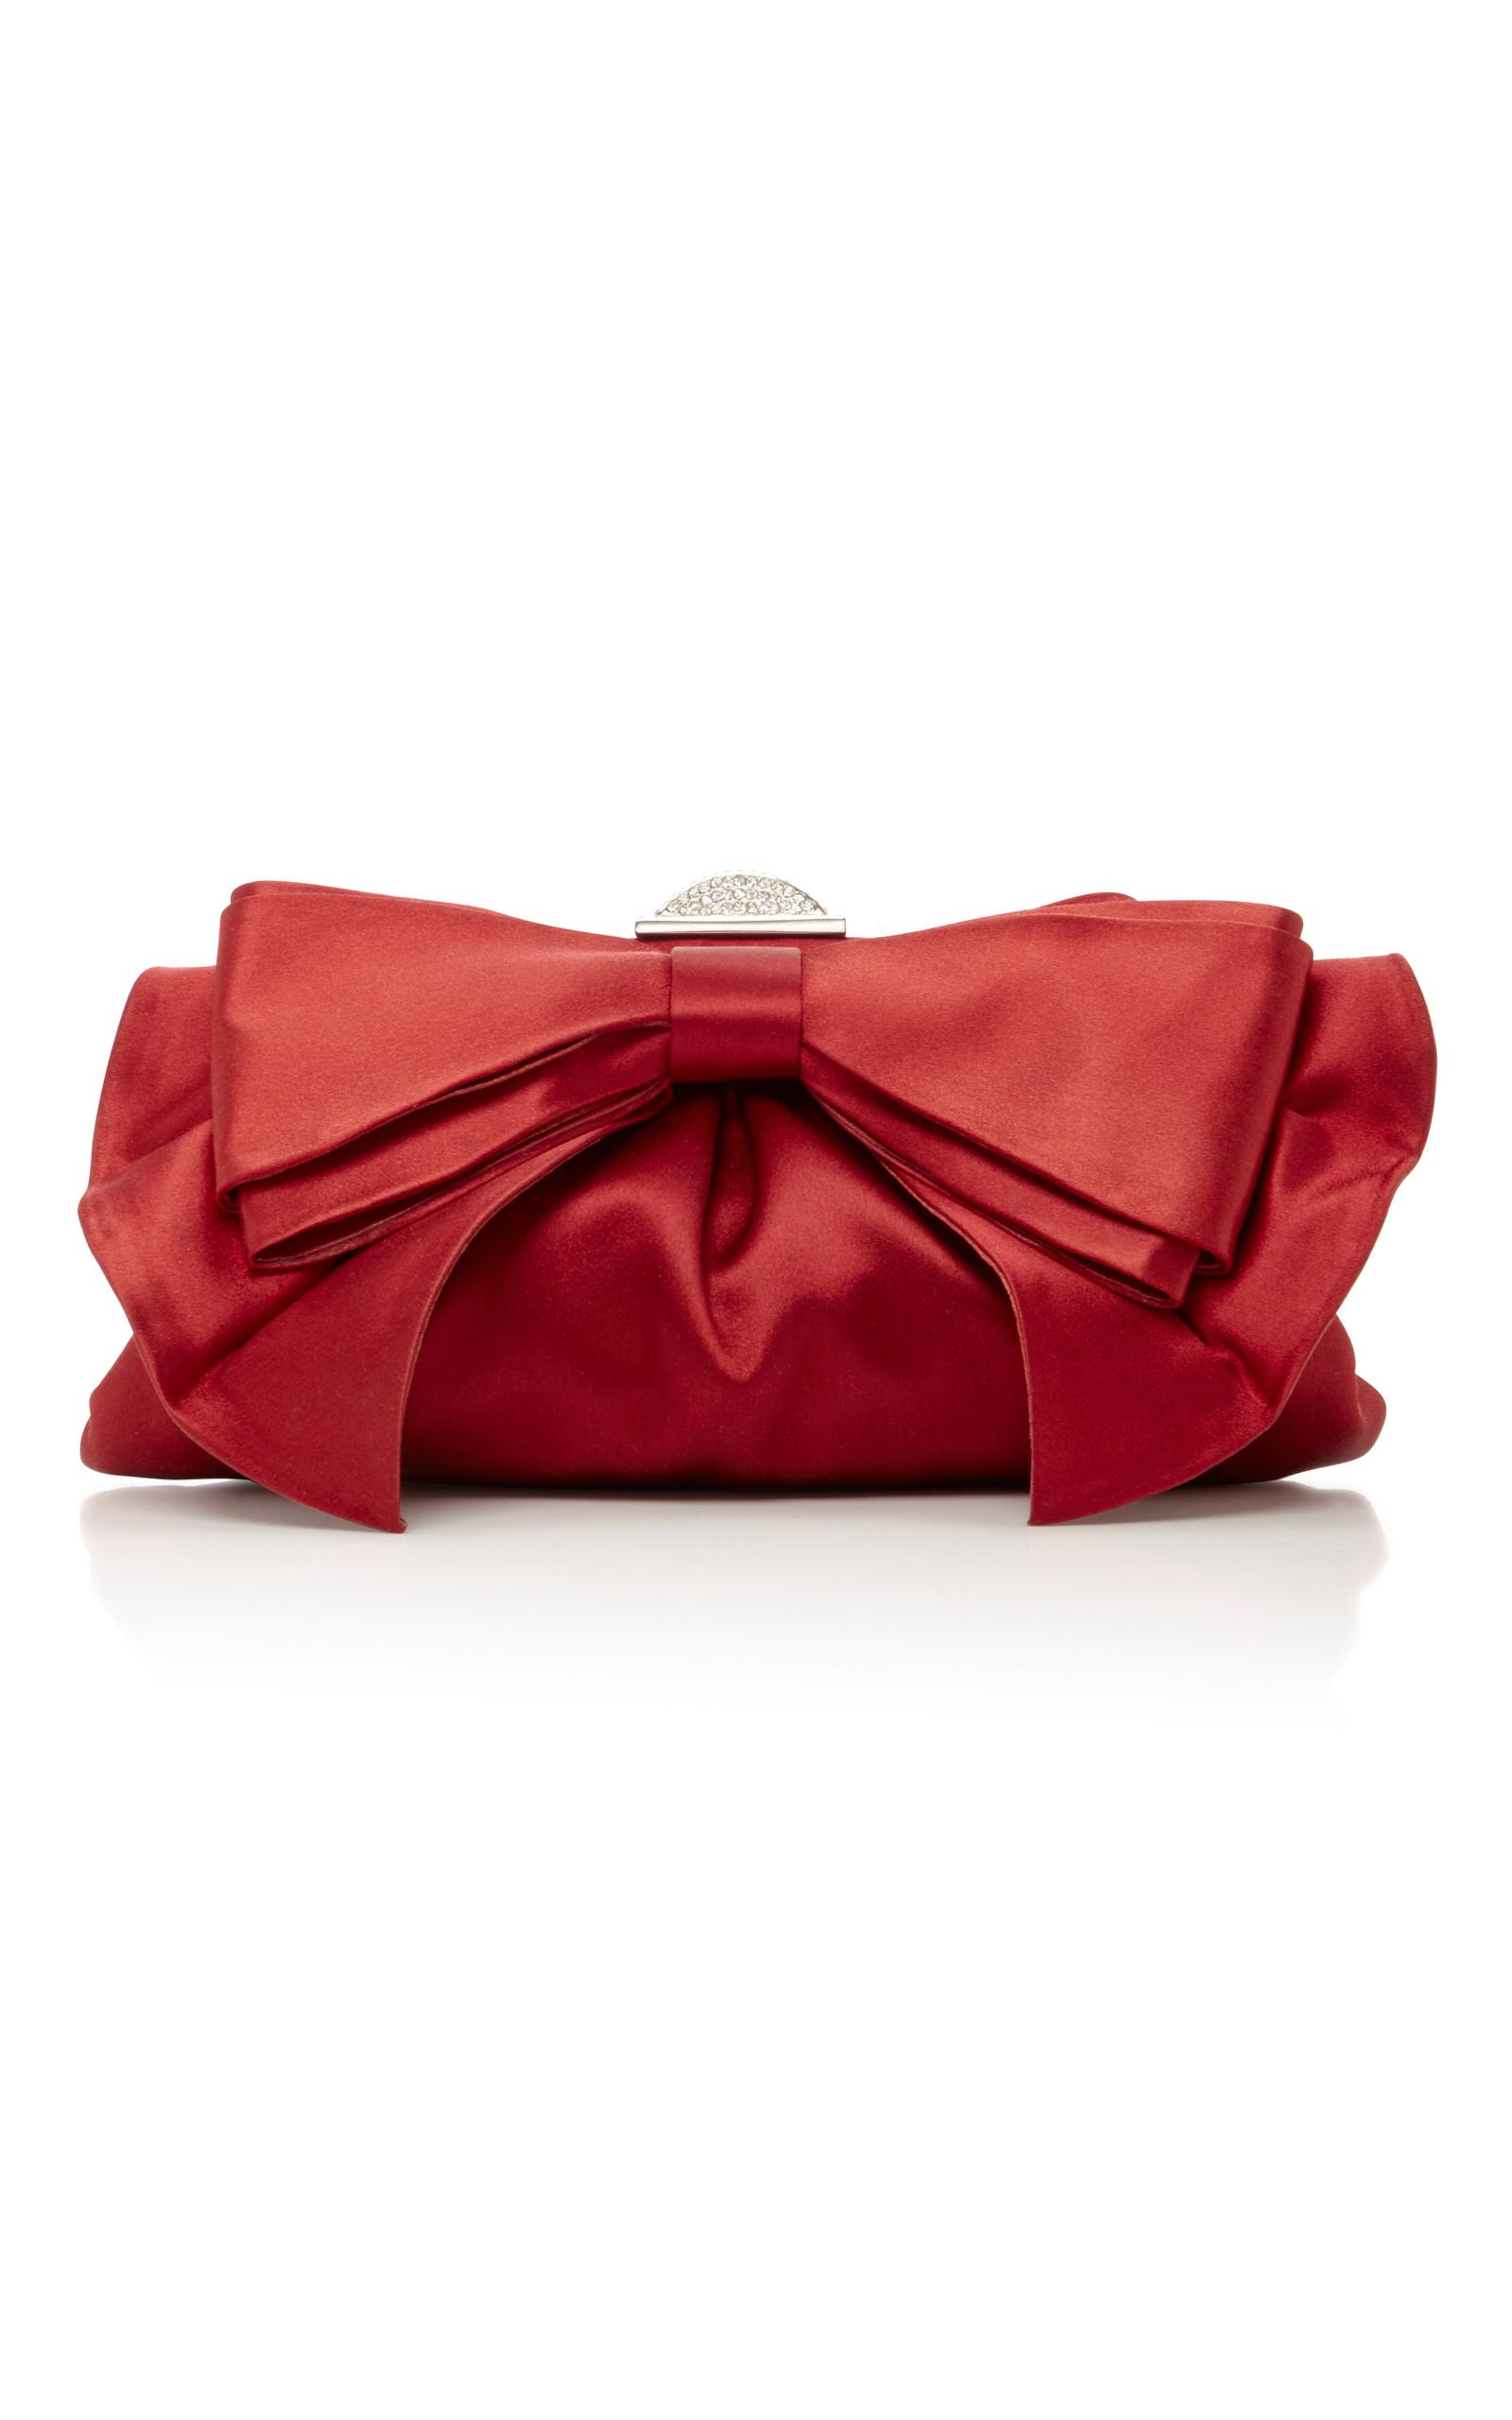 Judith Leiber Couture Madison Satin Bow Evening Clutch Bag In Red | Lyst